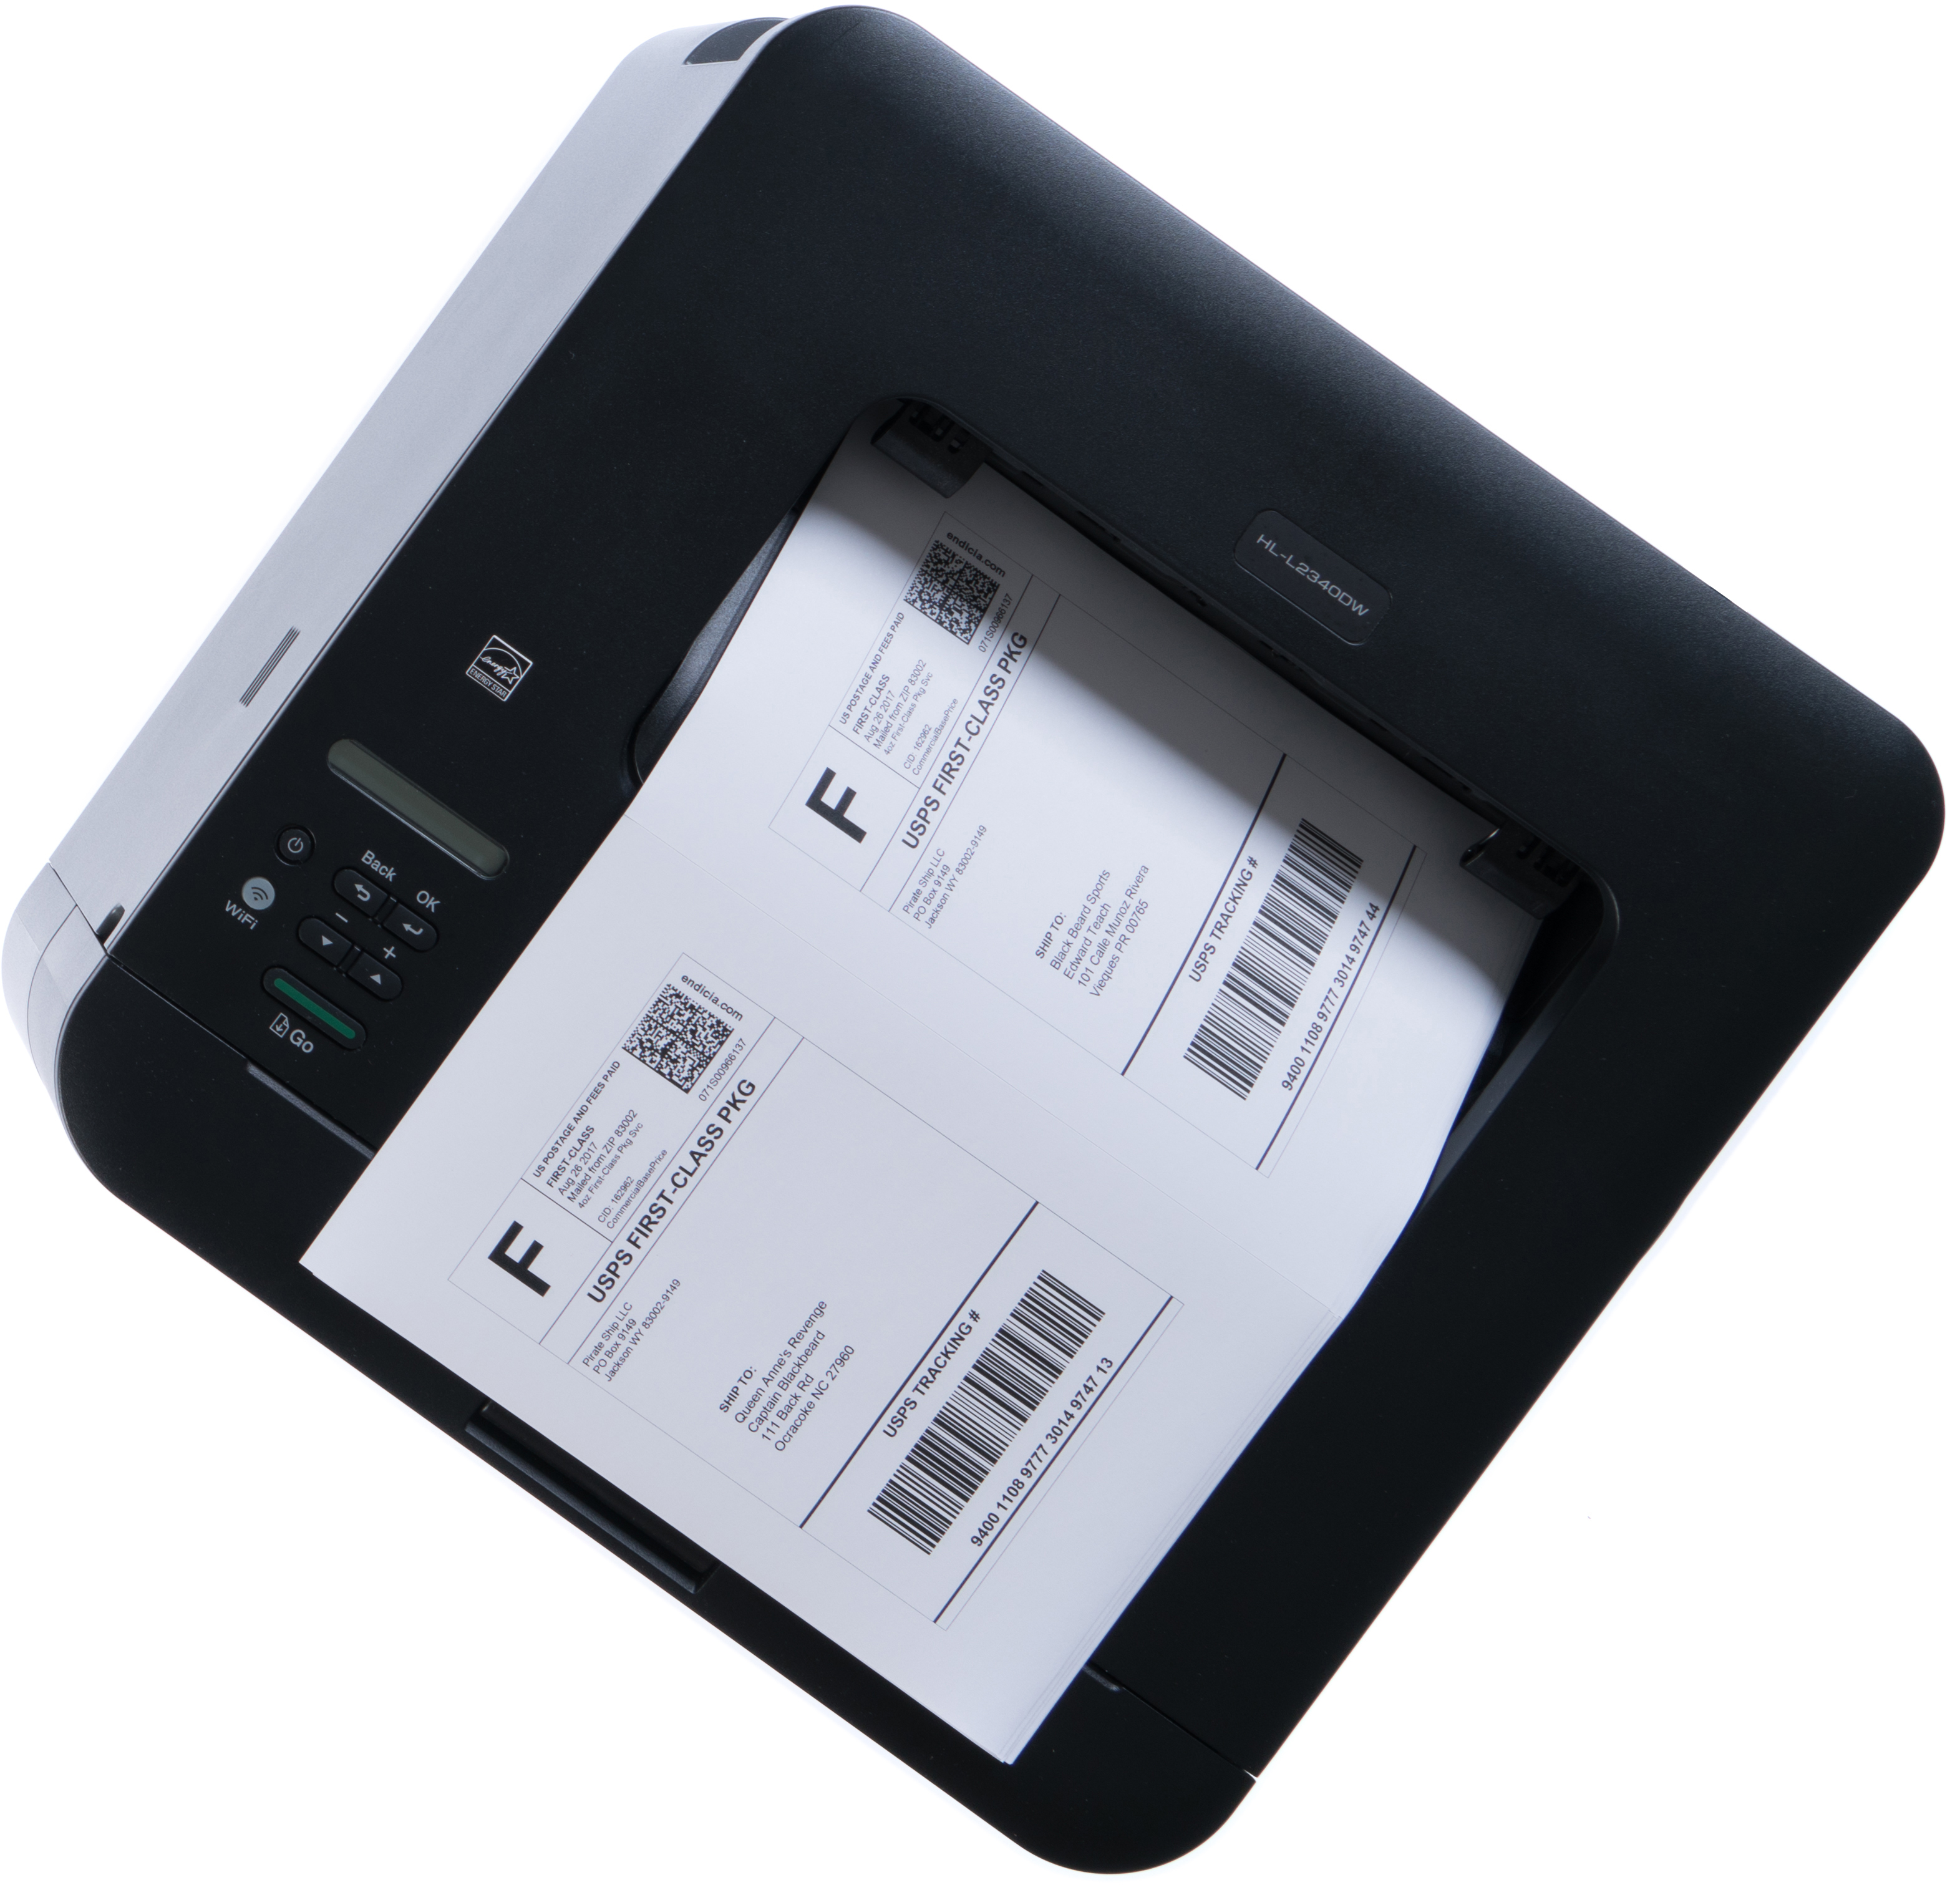 Laser printer with First Class Package shipping labels